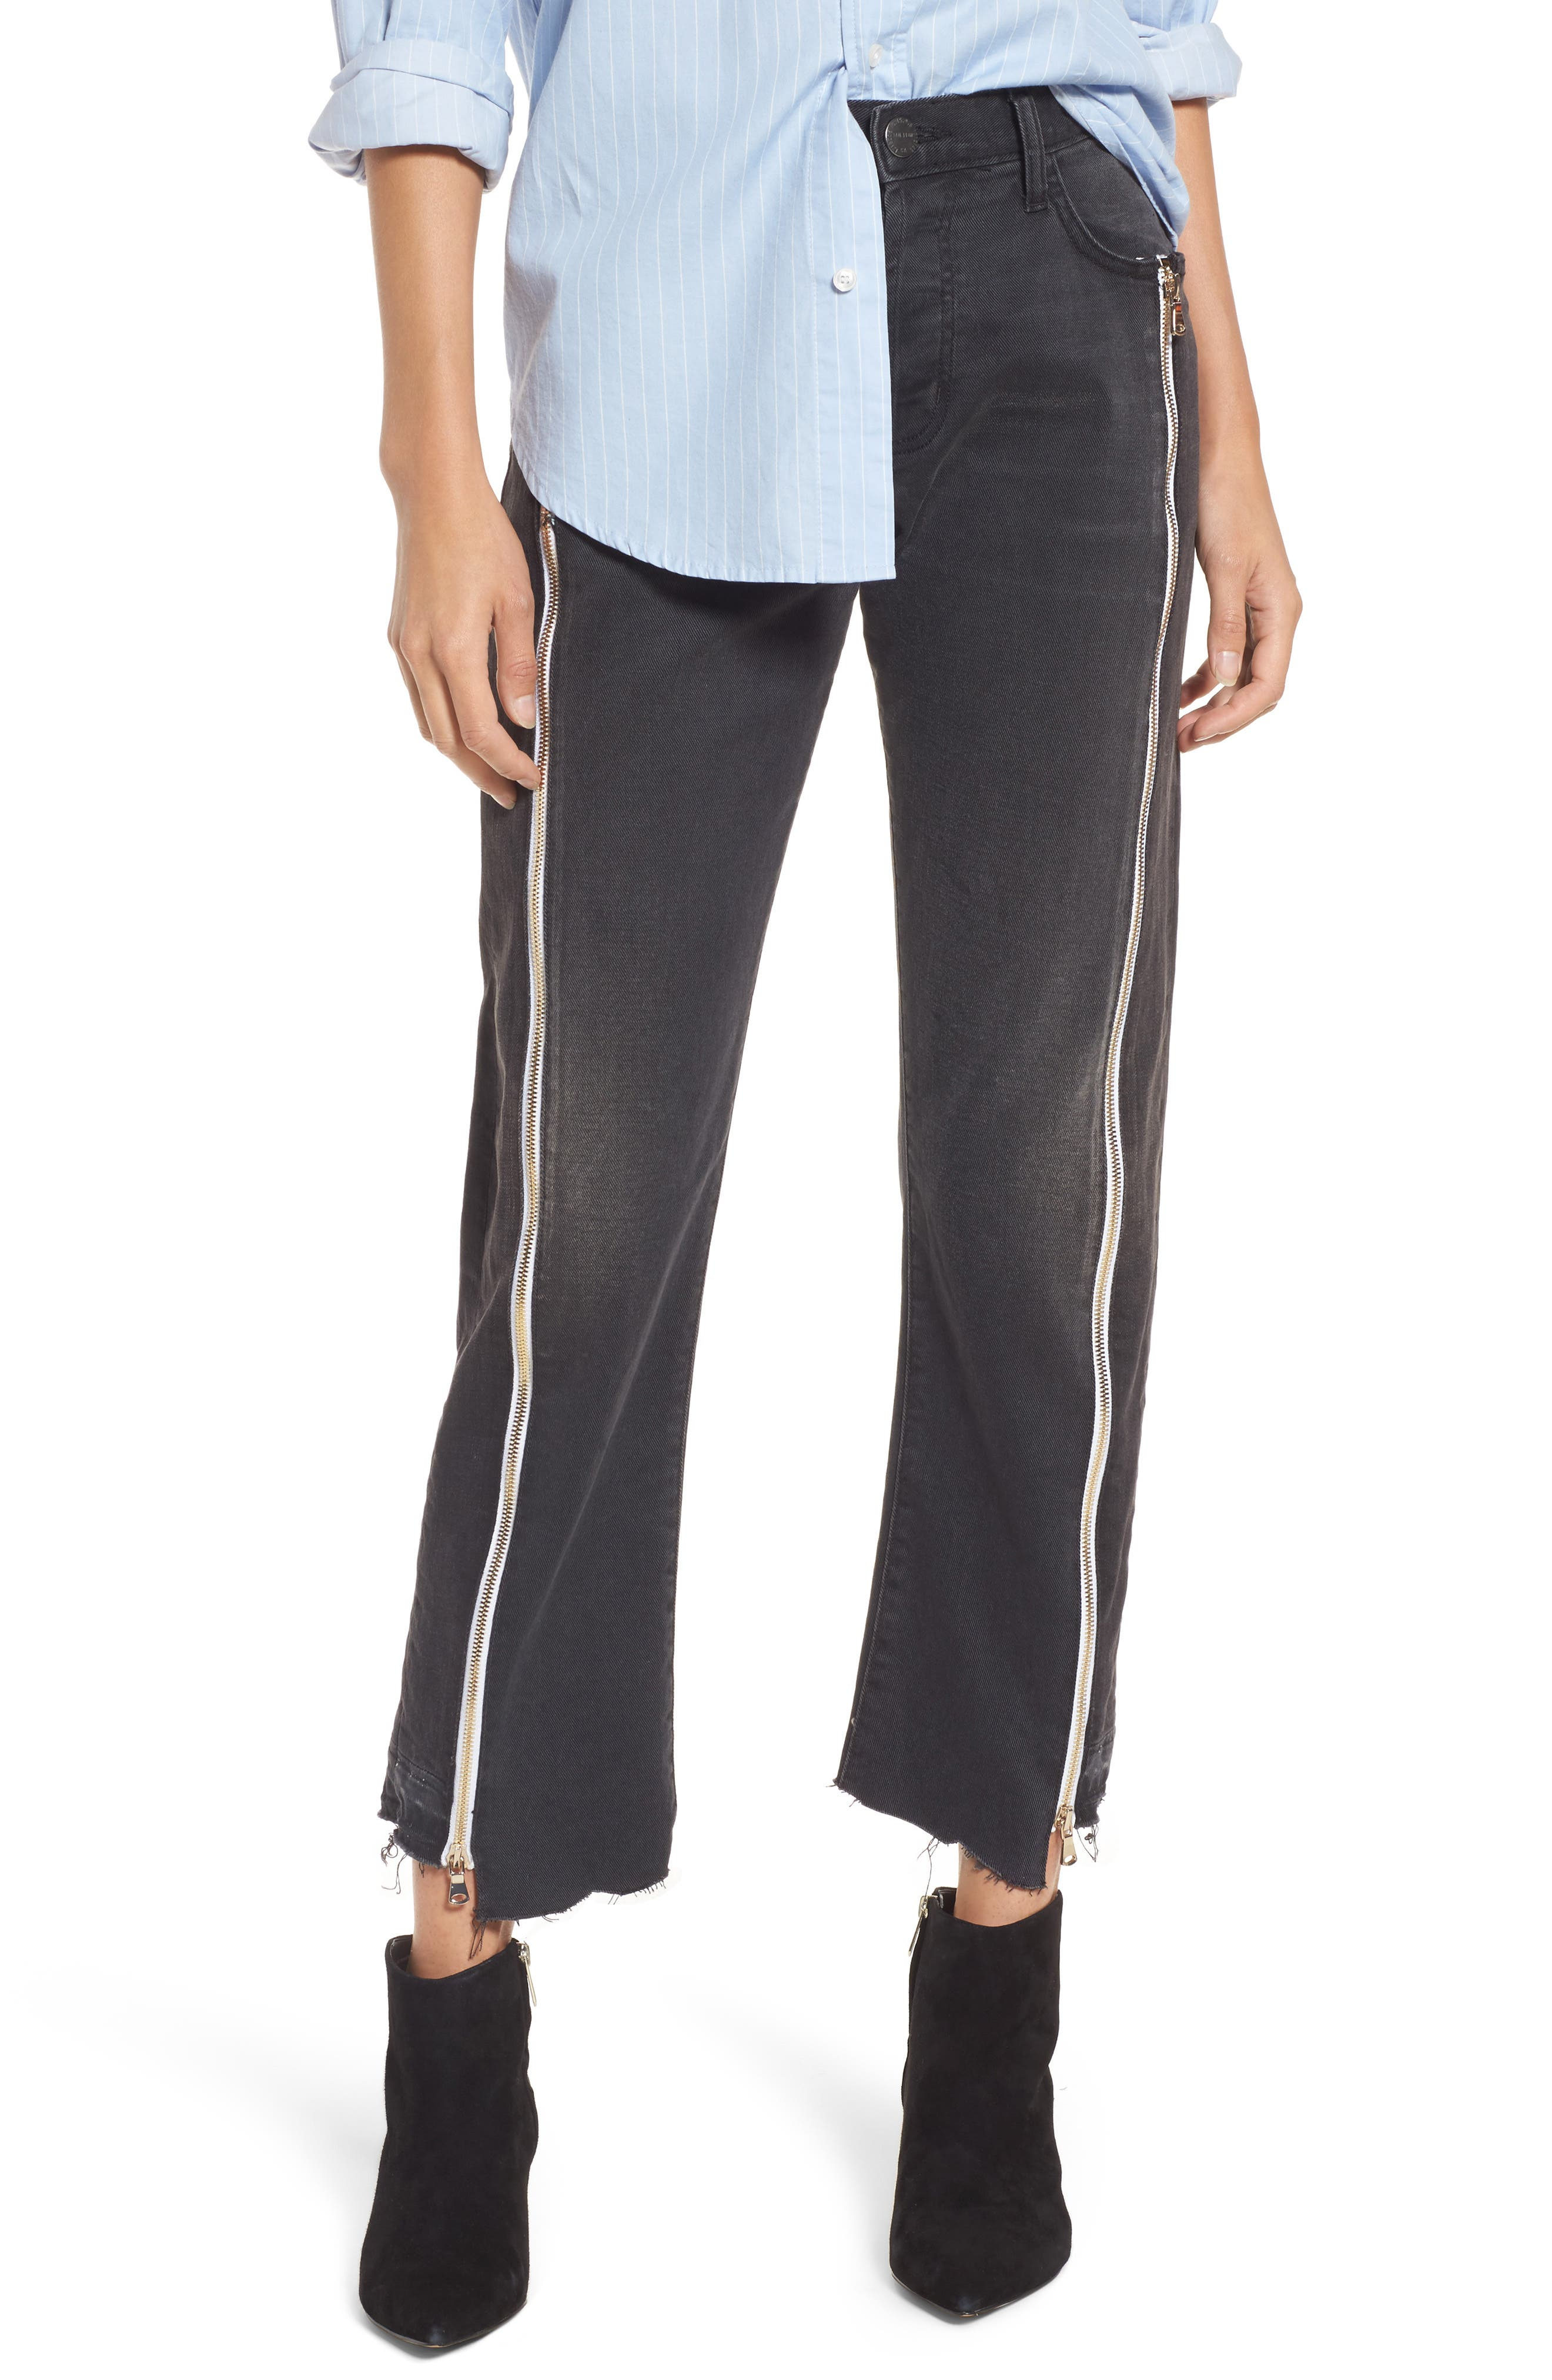 Alternate Image 1 Selected - Current/Elliott The Dallon Zip High Waist Crop Straight Jeans (Highline)